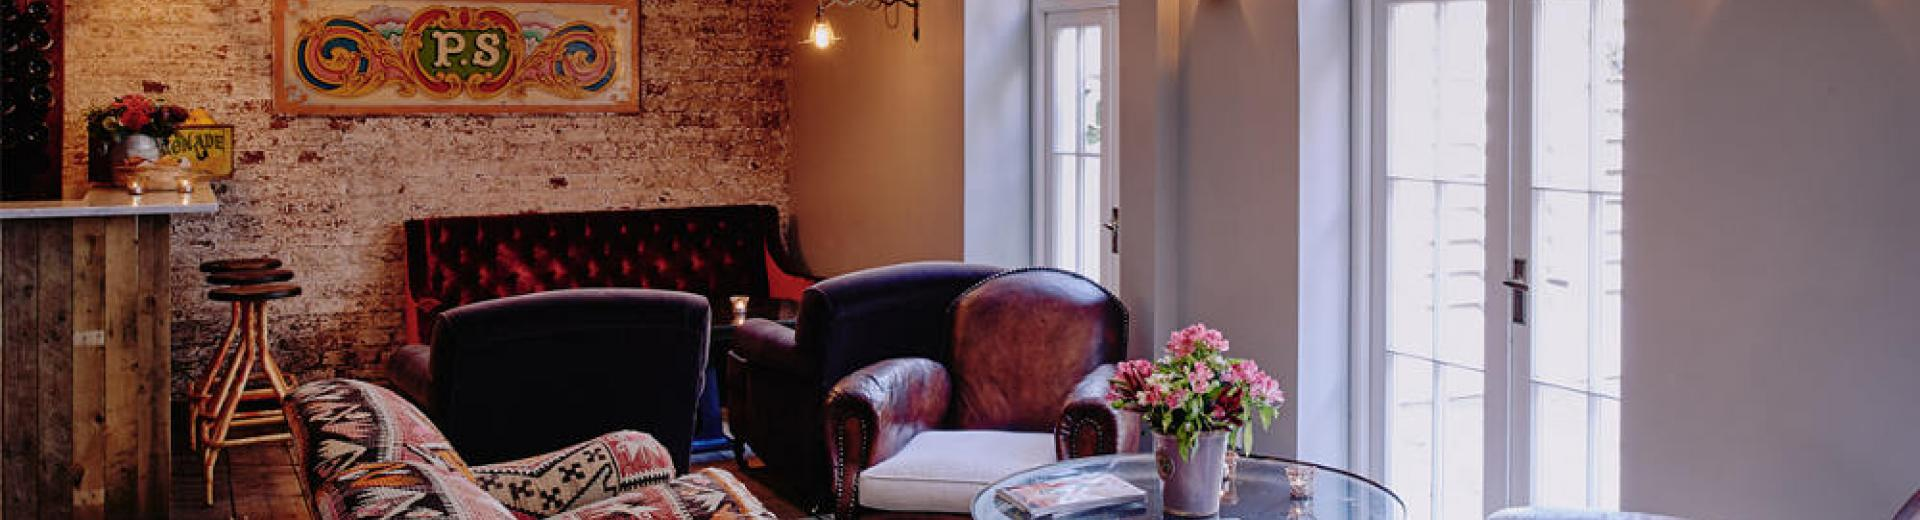 Top 10 boutique hotels in london for Best boutique hotels london